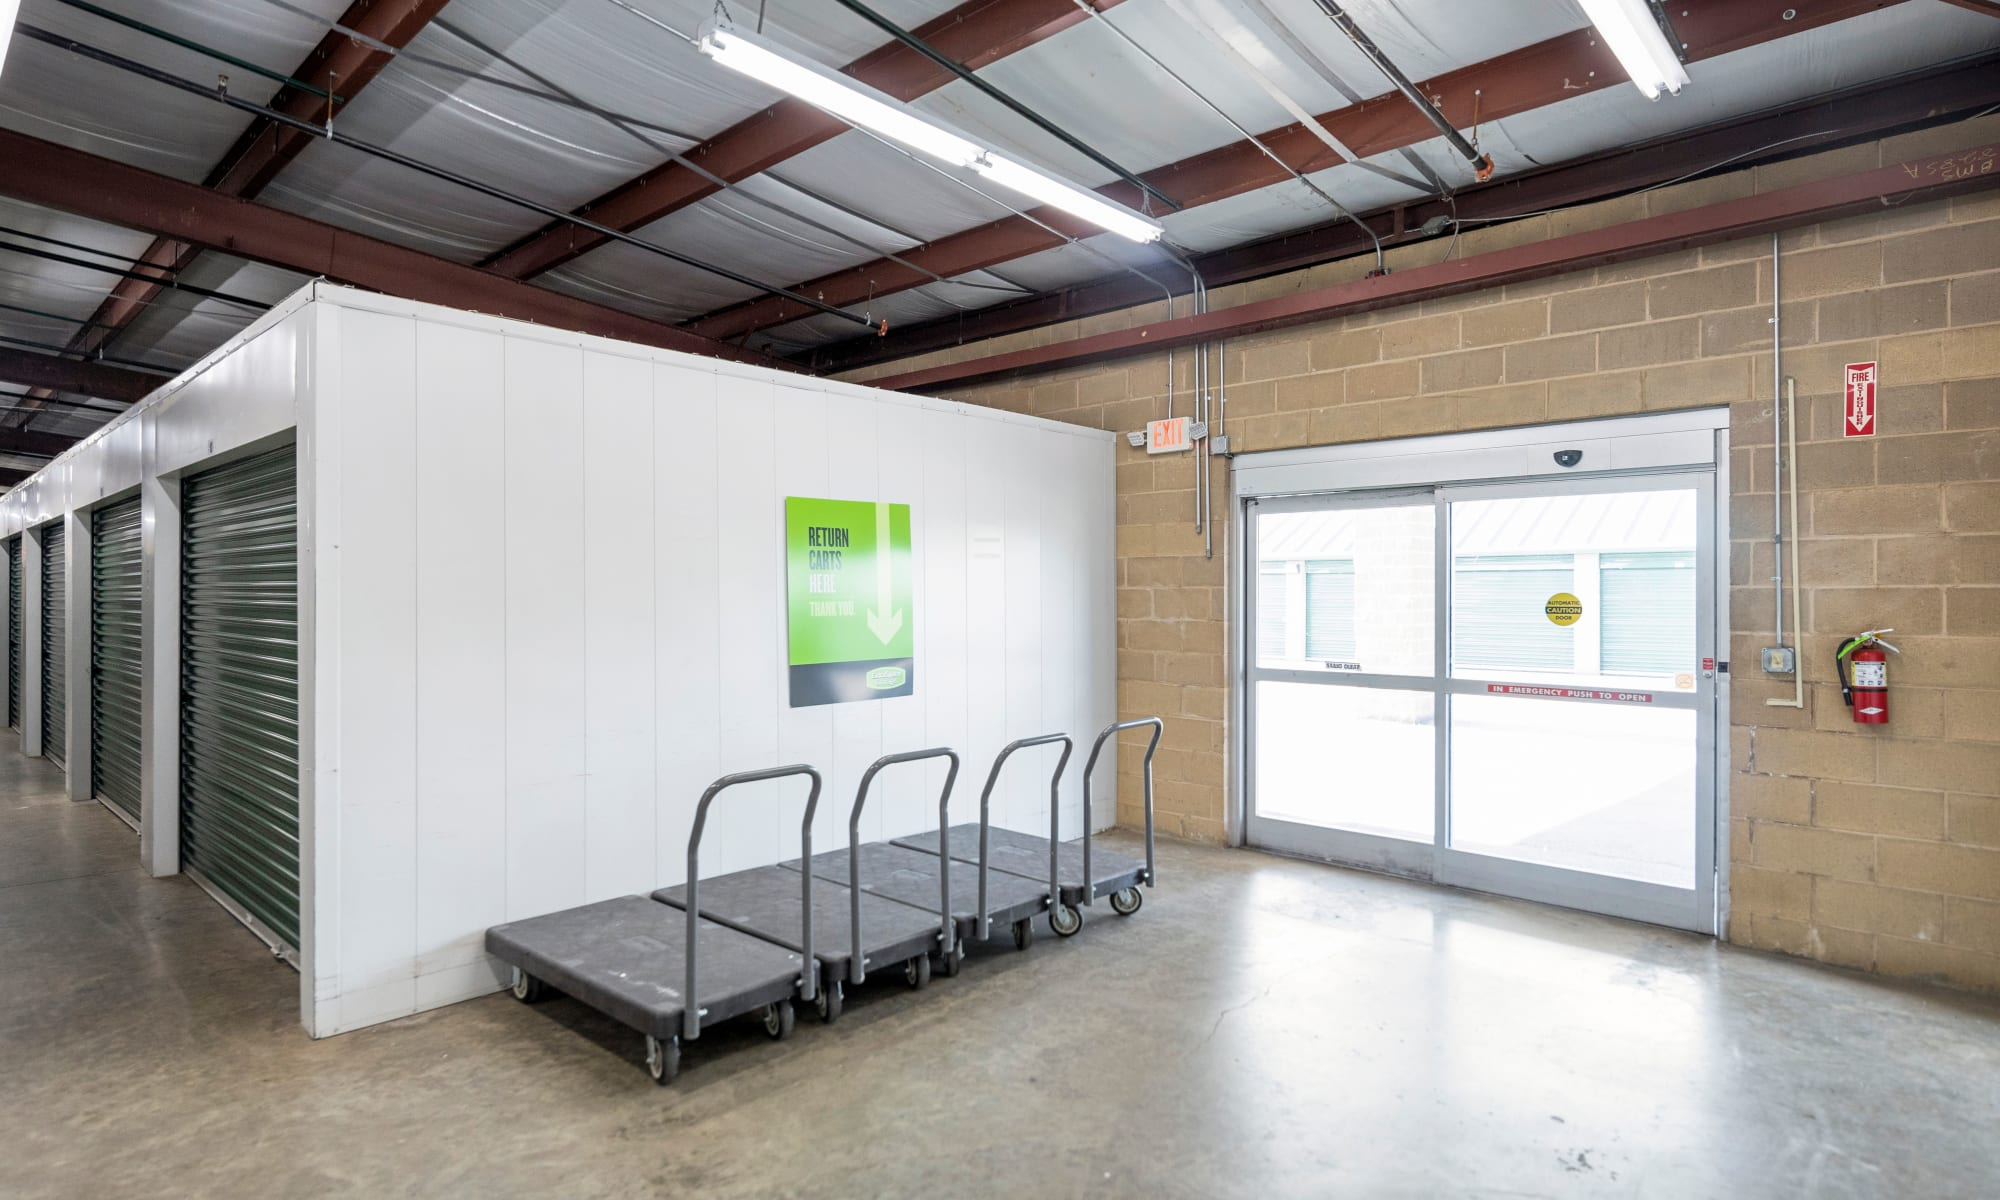 Citizen Storage offers a variety of self storage options in Olive Branch, Mississippi